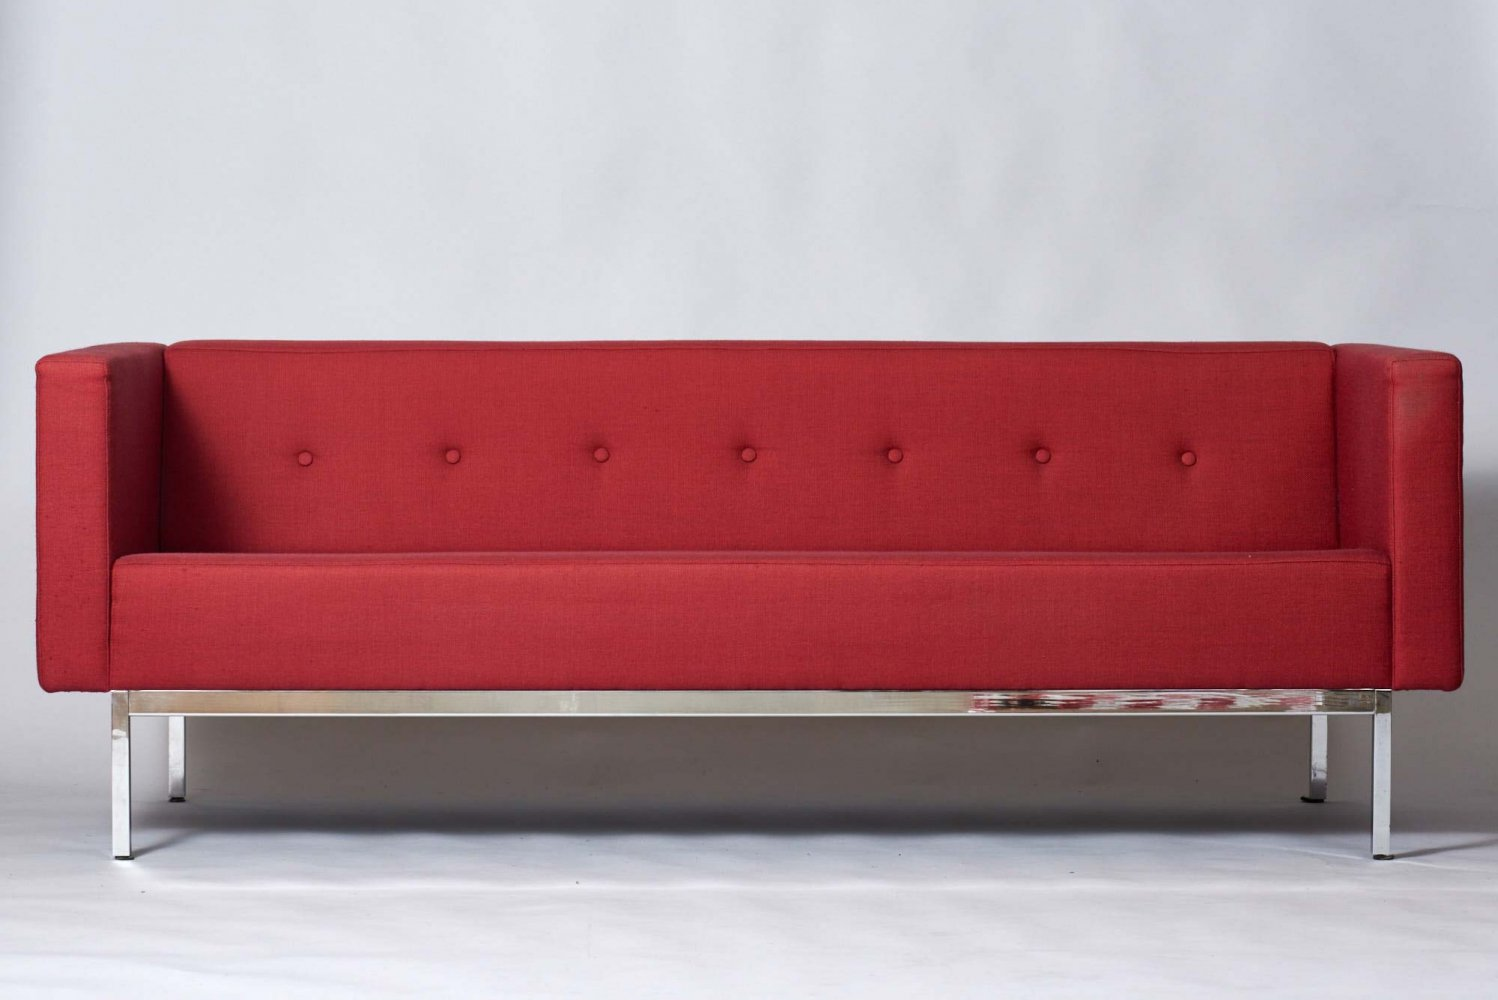 C070 sofa by Kho Liang Ie for Artifort, 1960s